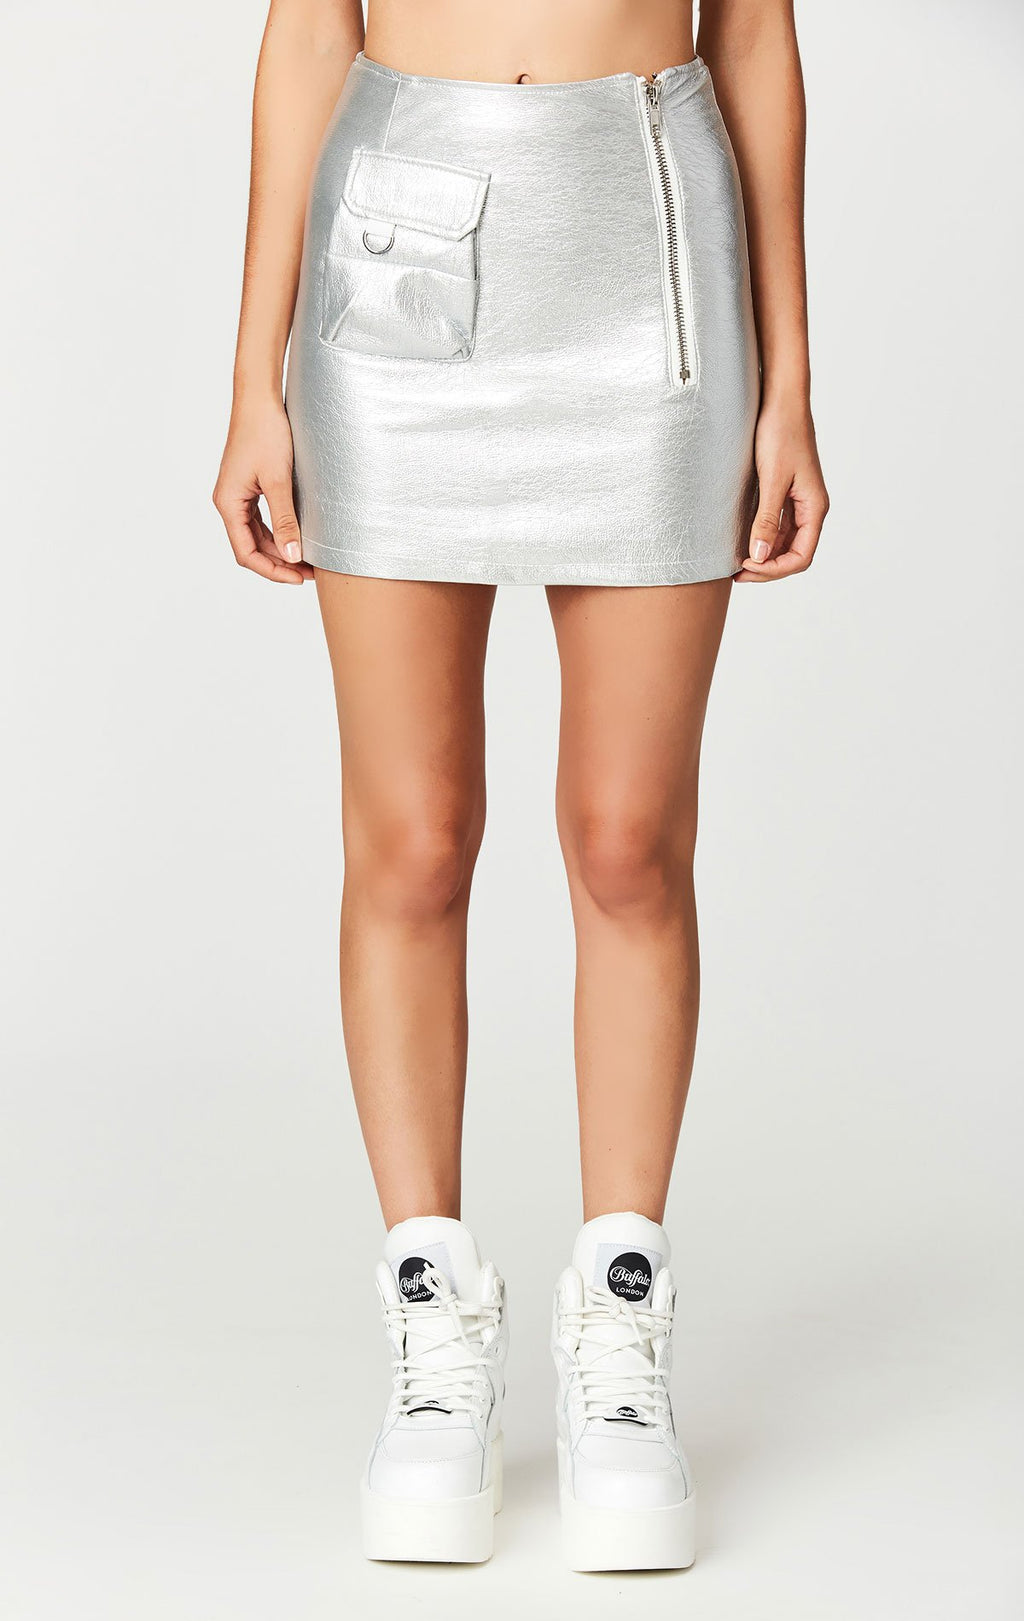 CARMAR METALLIC SILVER CARGO POCKET SKIRT FRONT